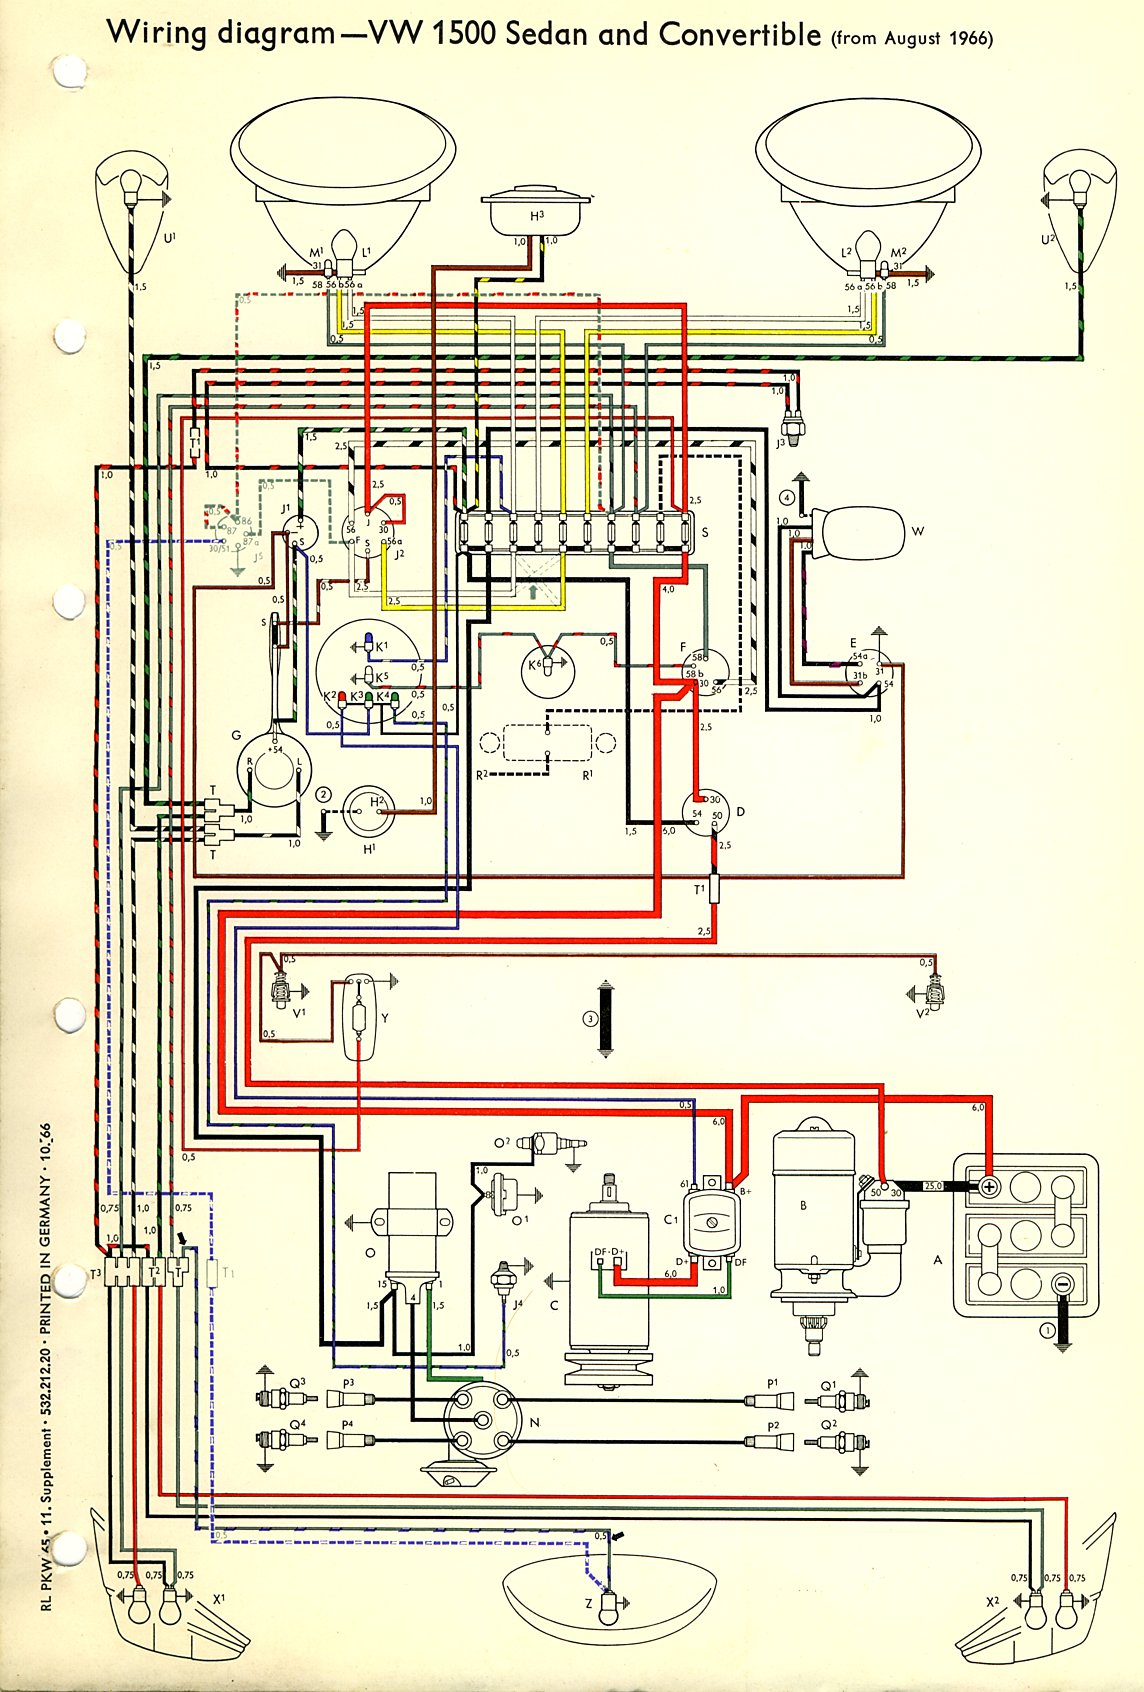 diagram jeep wrangler fuse box diagram 1971 vw beetle wiring diagram rh  mitzuradio me Jeep CJ7 Wiring-Diagram Jeep Cherokee Wiring Diagram